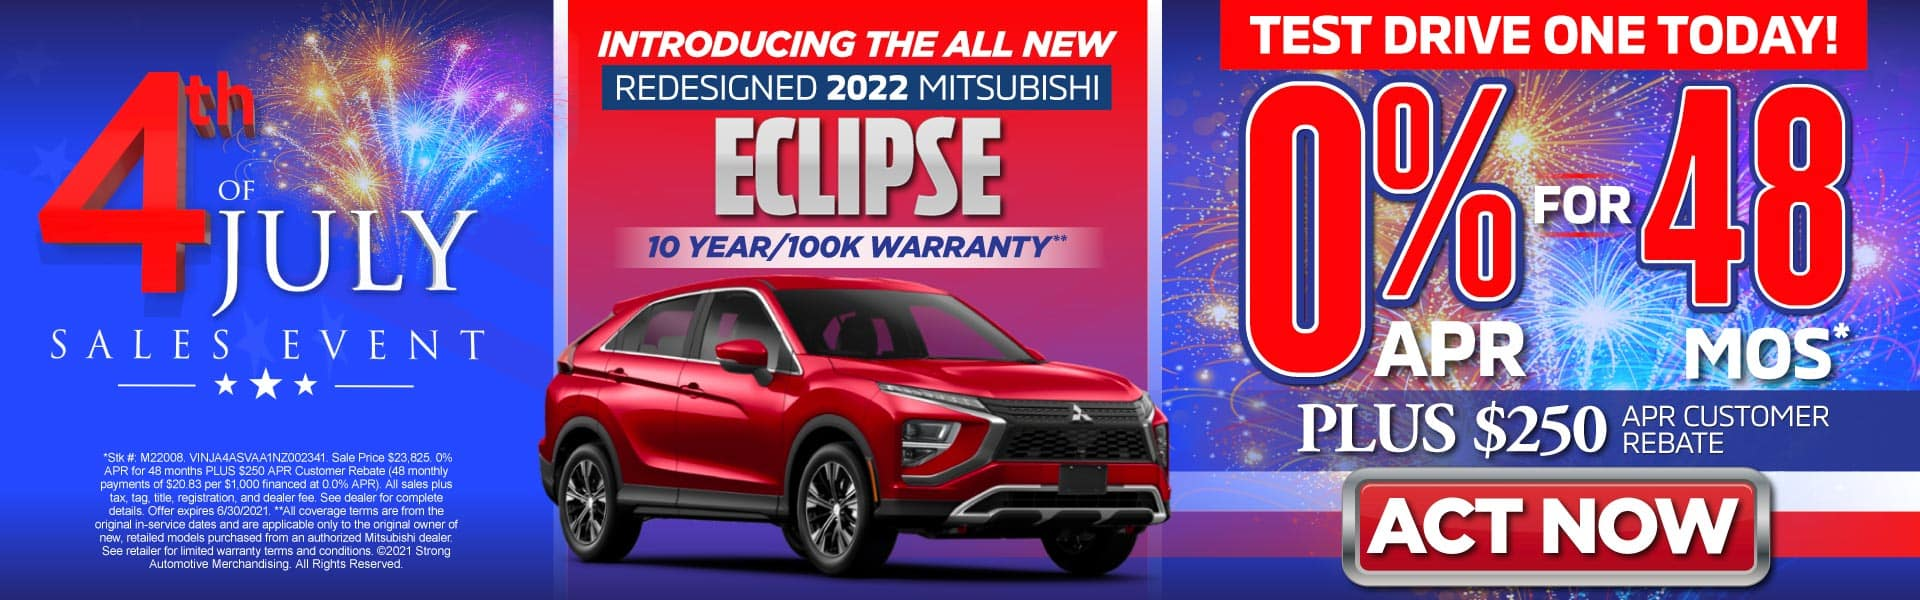 Introducing the All New Redesigned 2022 Mitsubishi Eclipse – 0% for 48 months PLUS $250 APR Customer Rebate* - Act Now